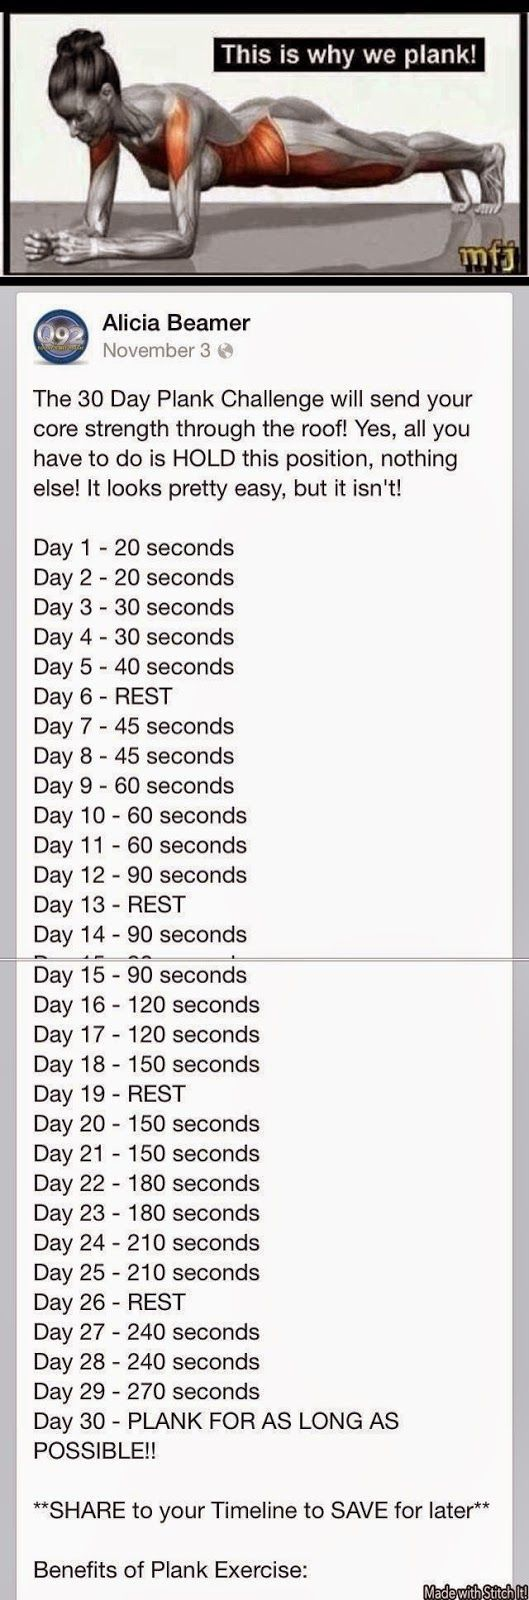 Planking is serious hard core. Beginner try to do 30 seconds. Soon you'll be up to 2 min. Melissa